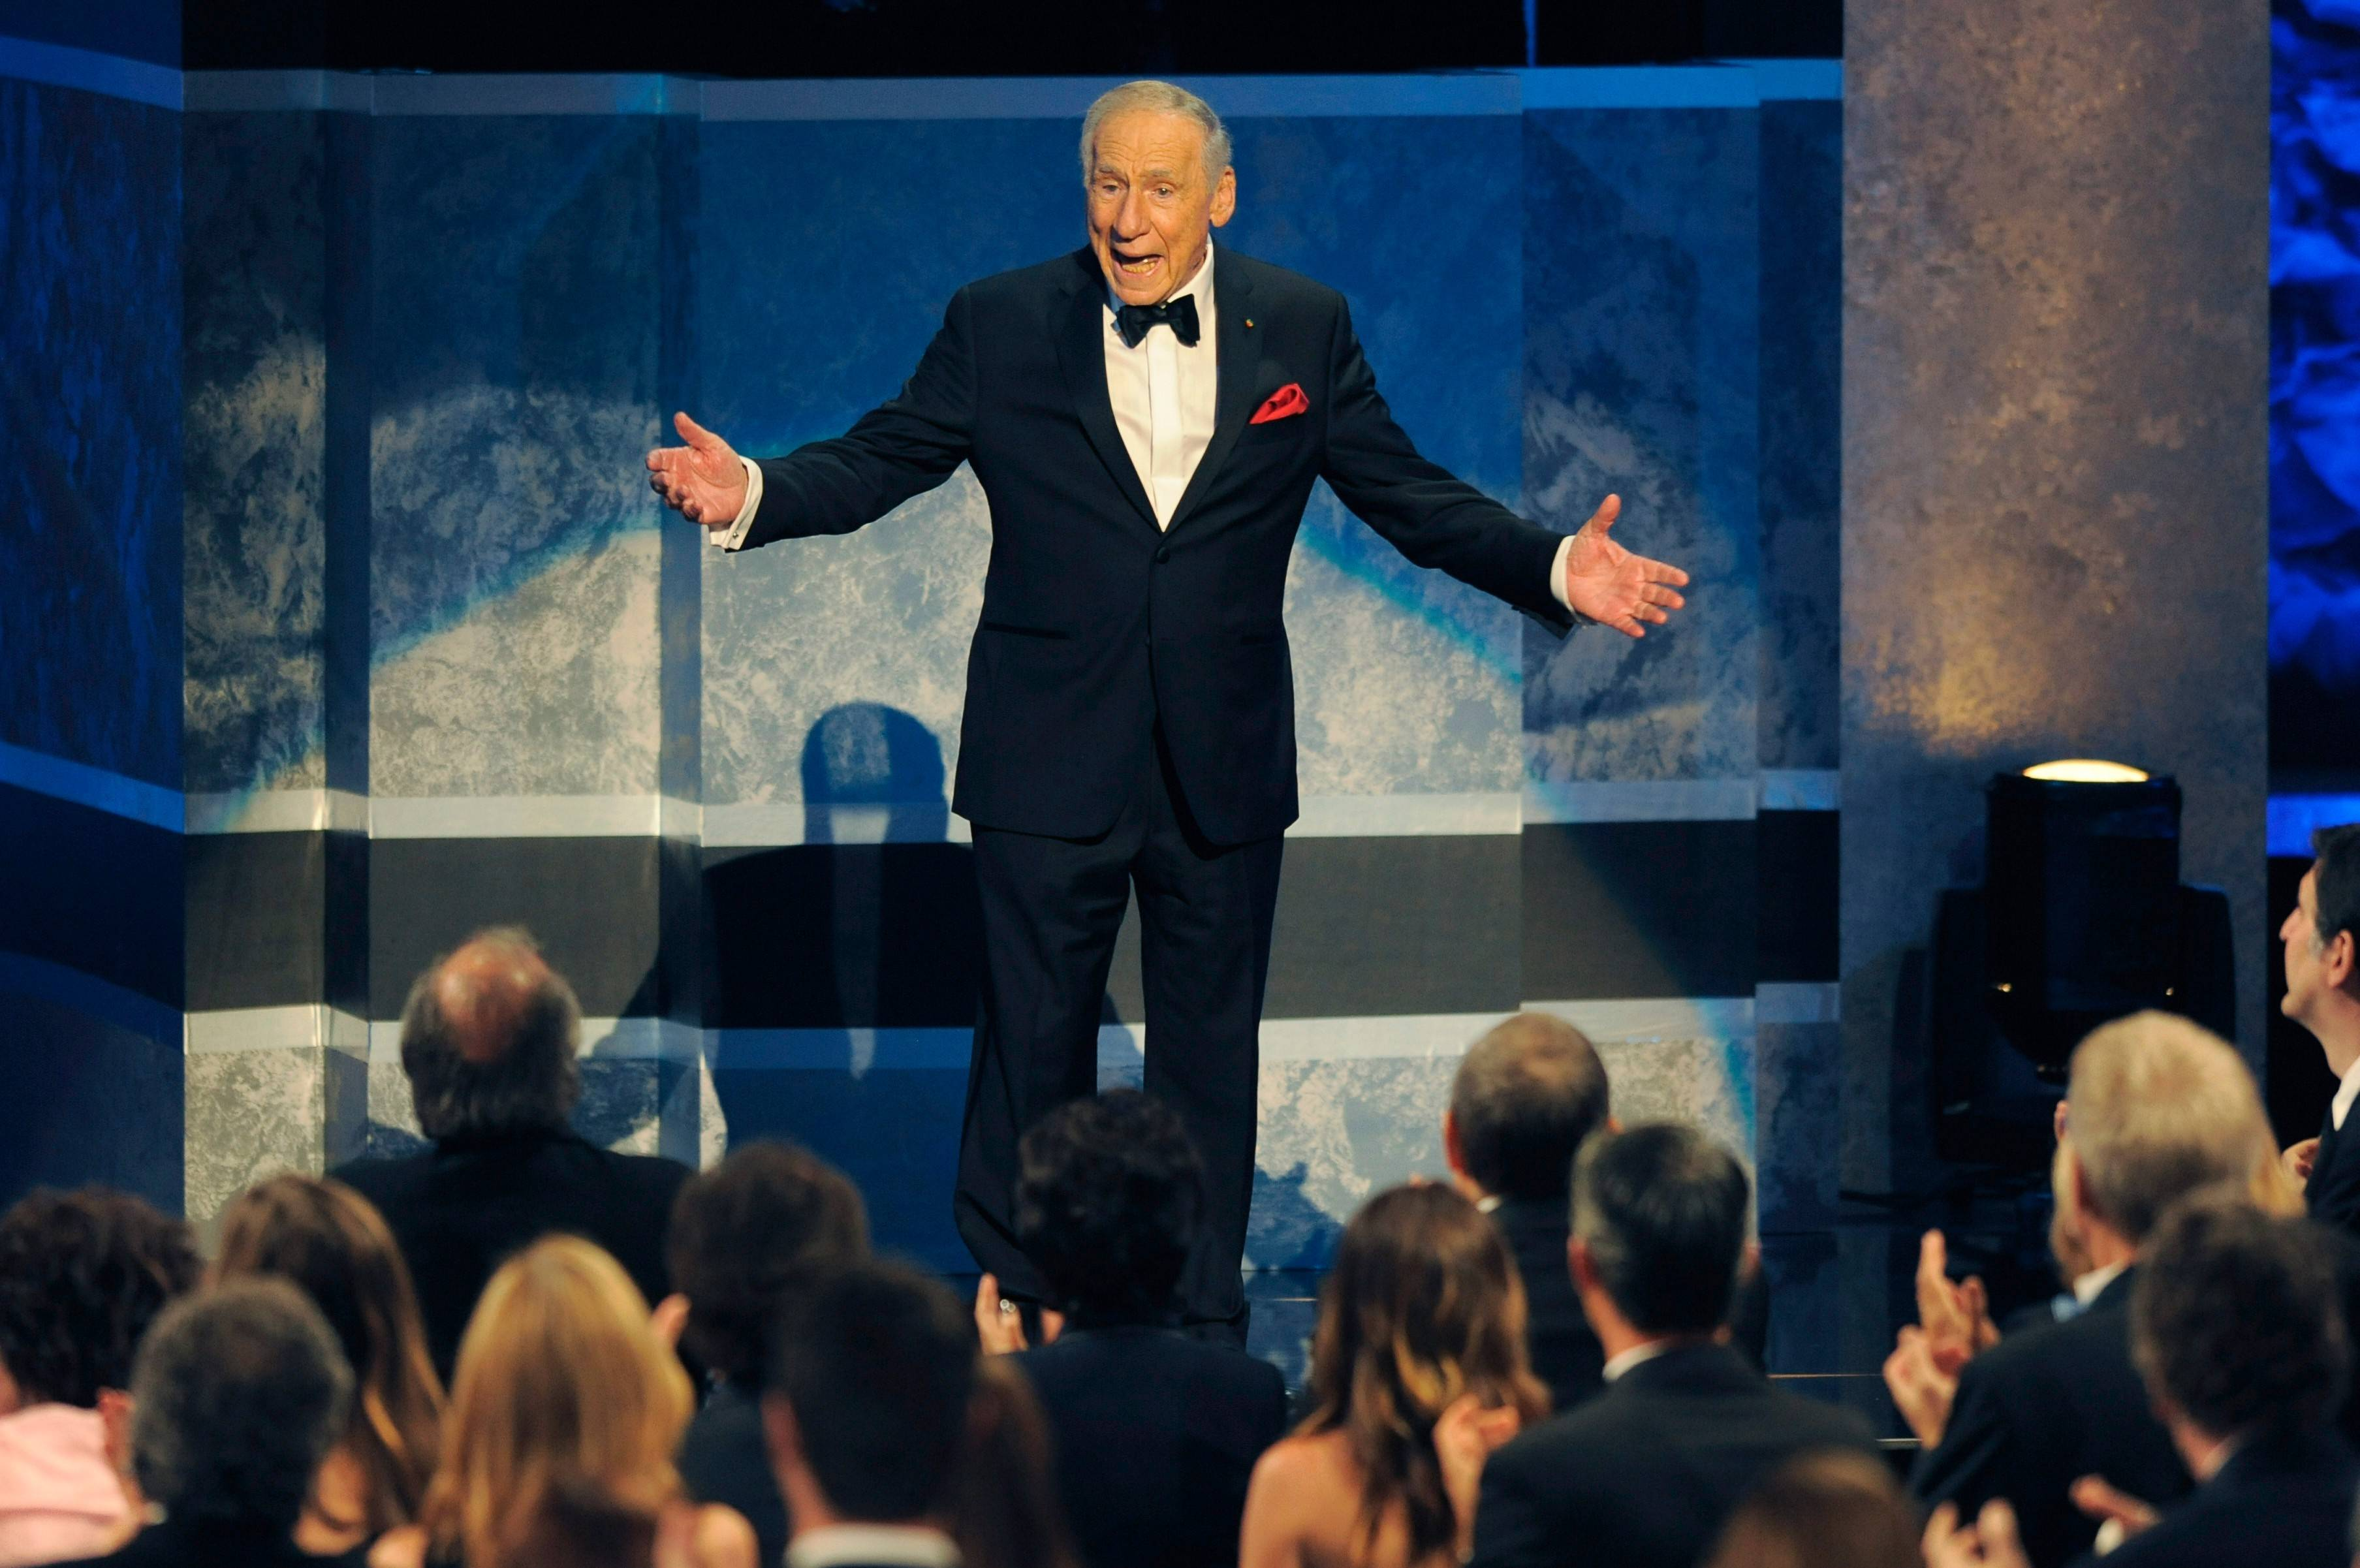 Honoree Mel Brooks greets the crowd as he arrives onstage for the American Film Institute's 41st Lifetime Achievement Award Gala at the Dolby Theatre on Thursday, June 6, 2013 in Los Angeles. (Photo by Chris Pizello/Invision/AP)